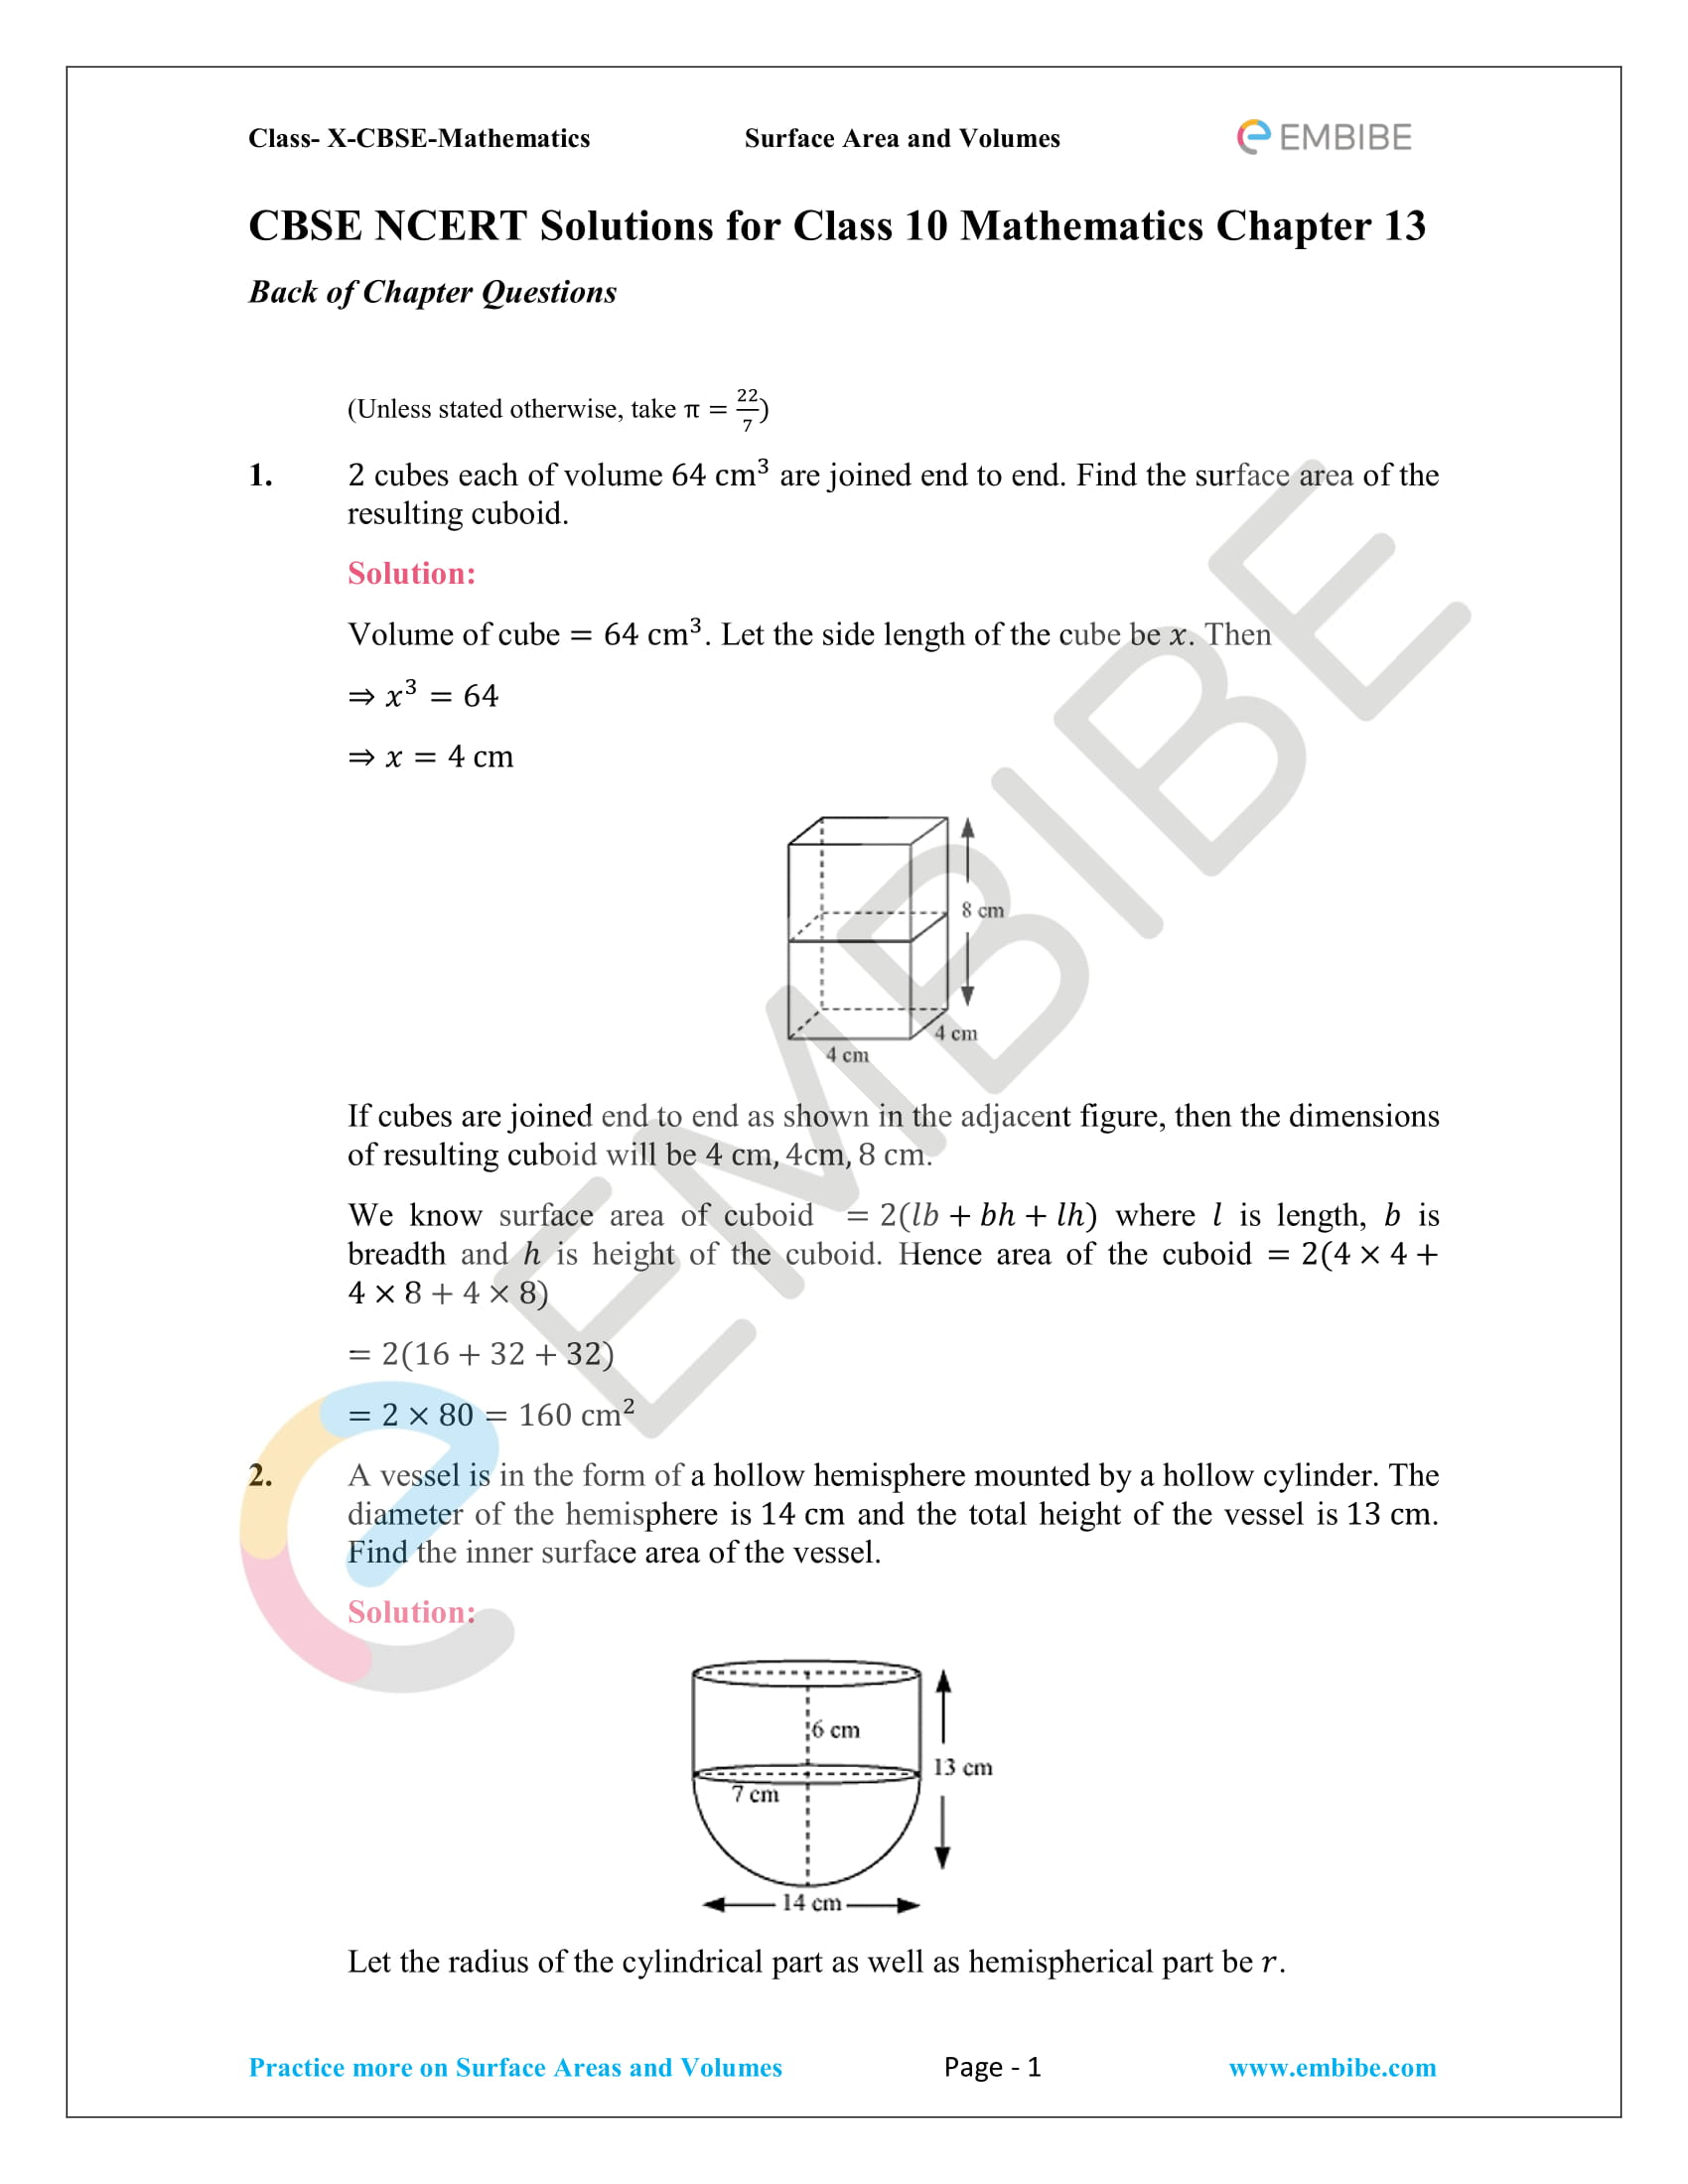 NCERT Solutions For Class 10 Maths Chapter 13: Surface Areas And